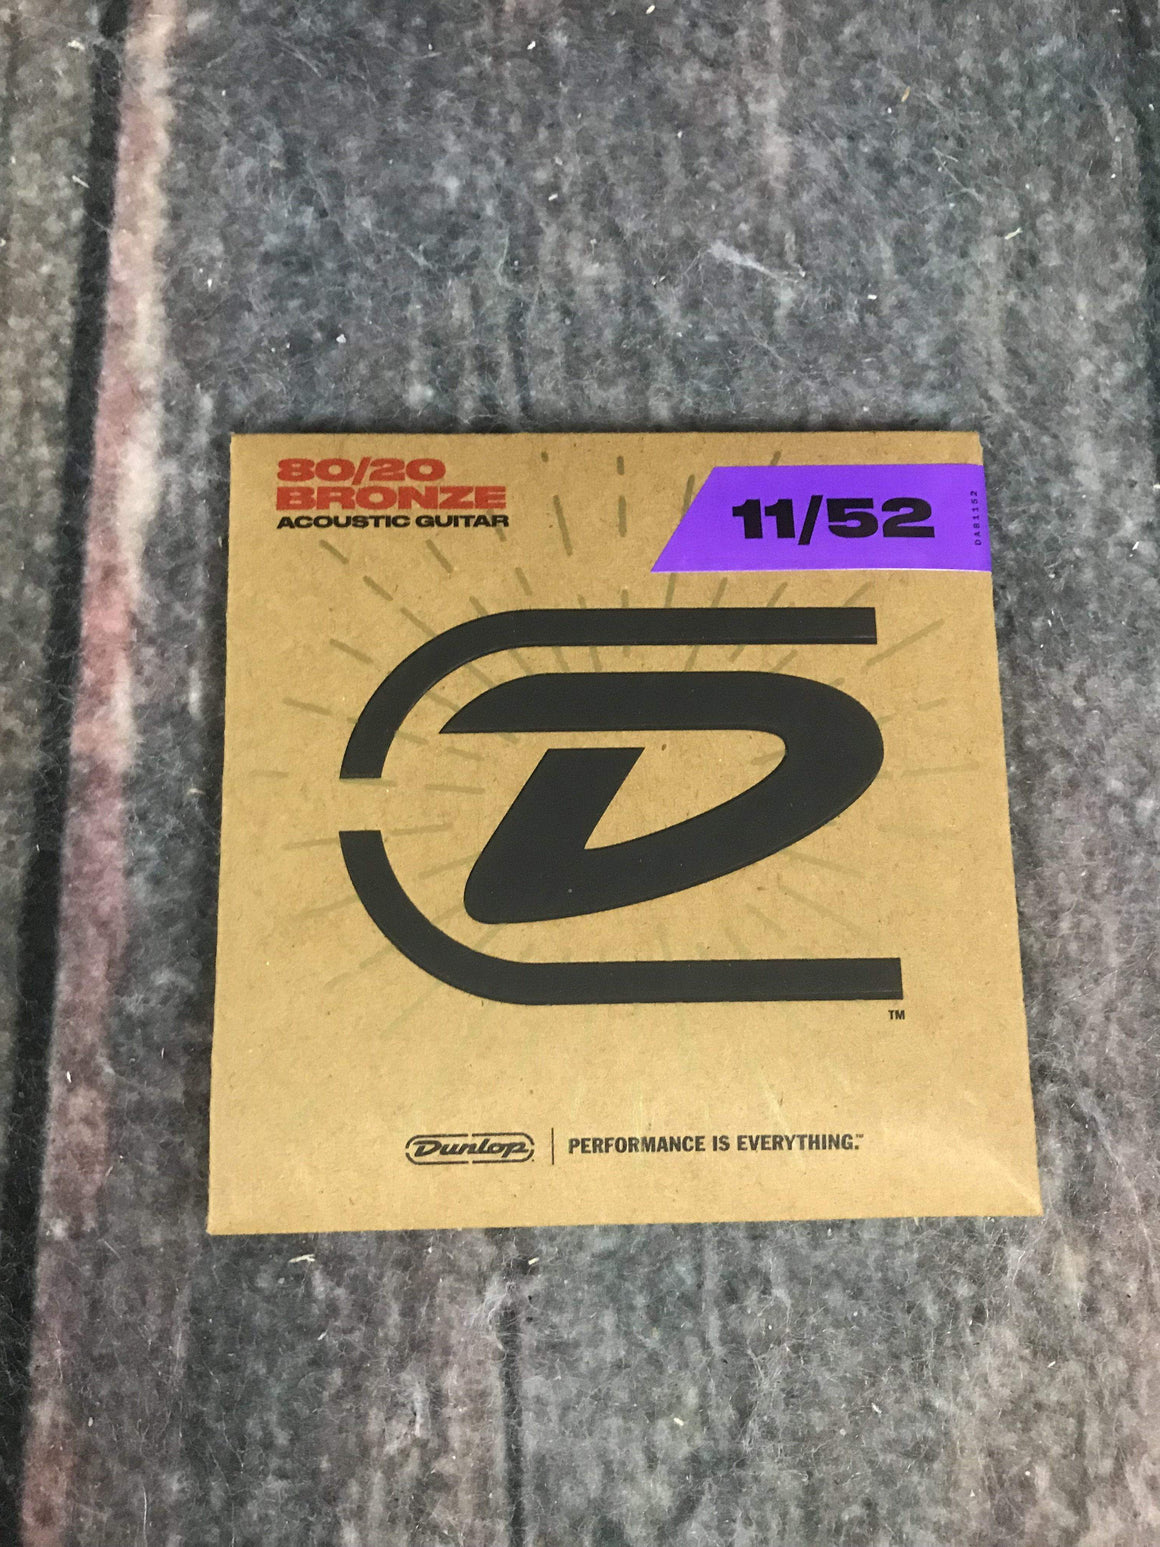 Dunlop Acoustic Guitar Strings Dunlop DAB1152 Medium Light 80/20 Bronze Acoustic Guitar Strings